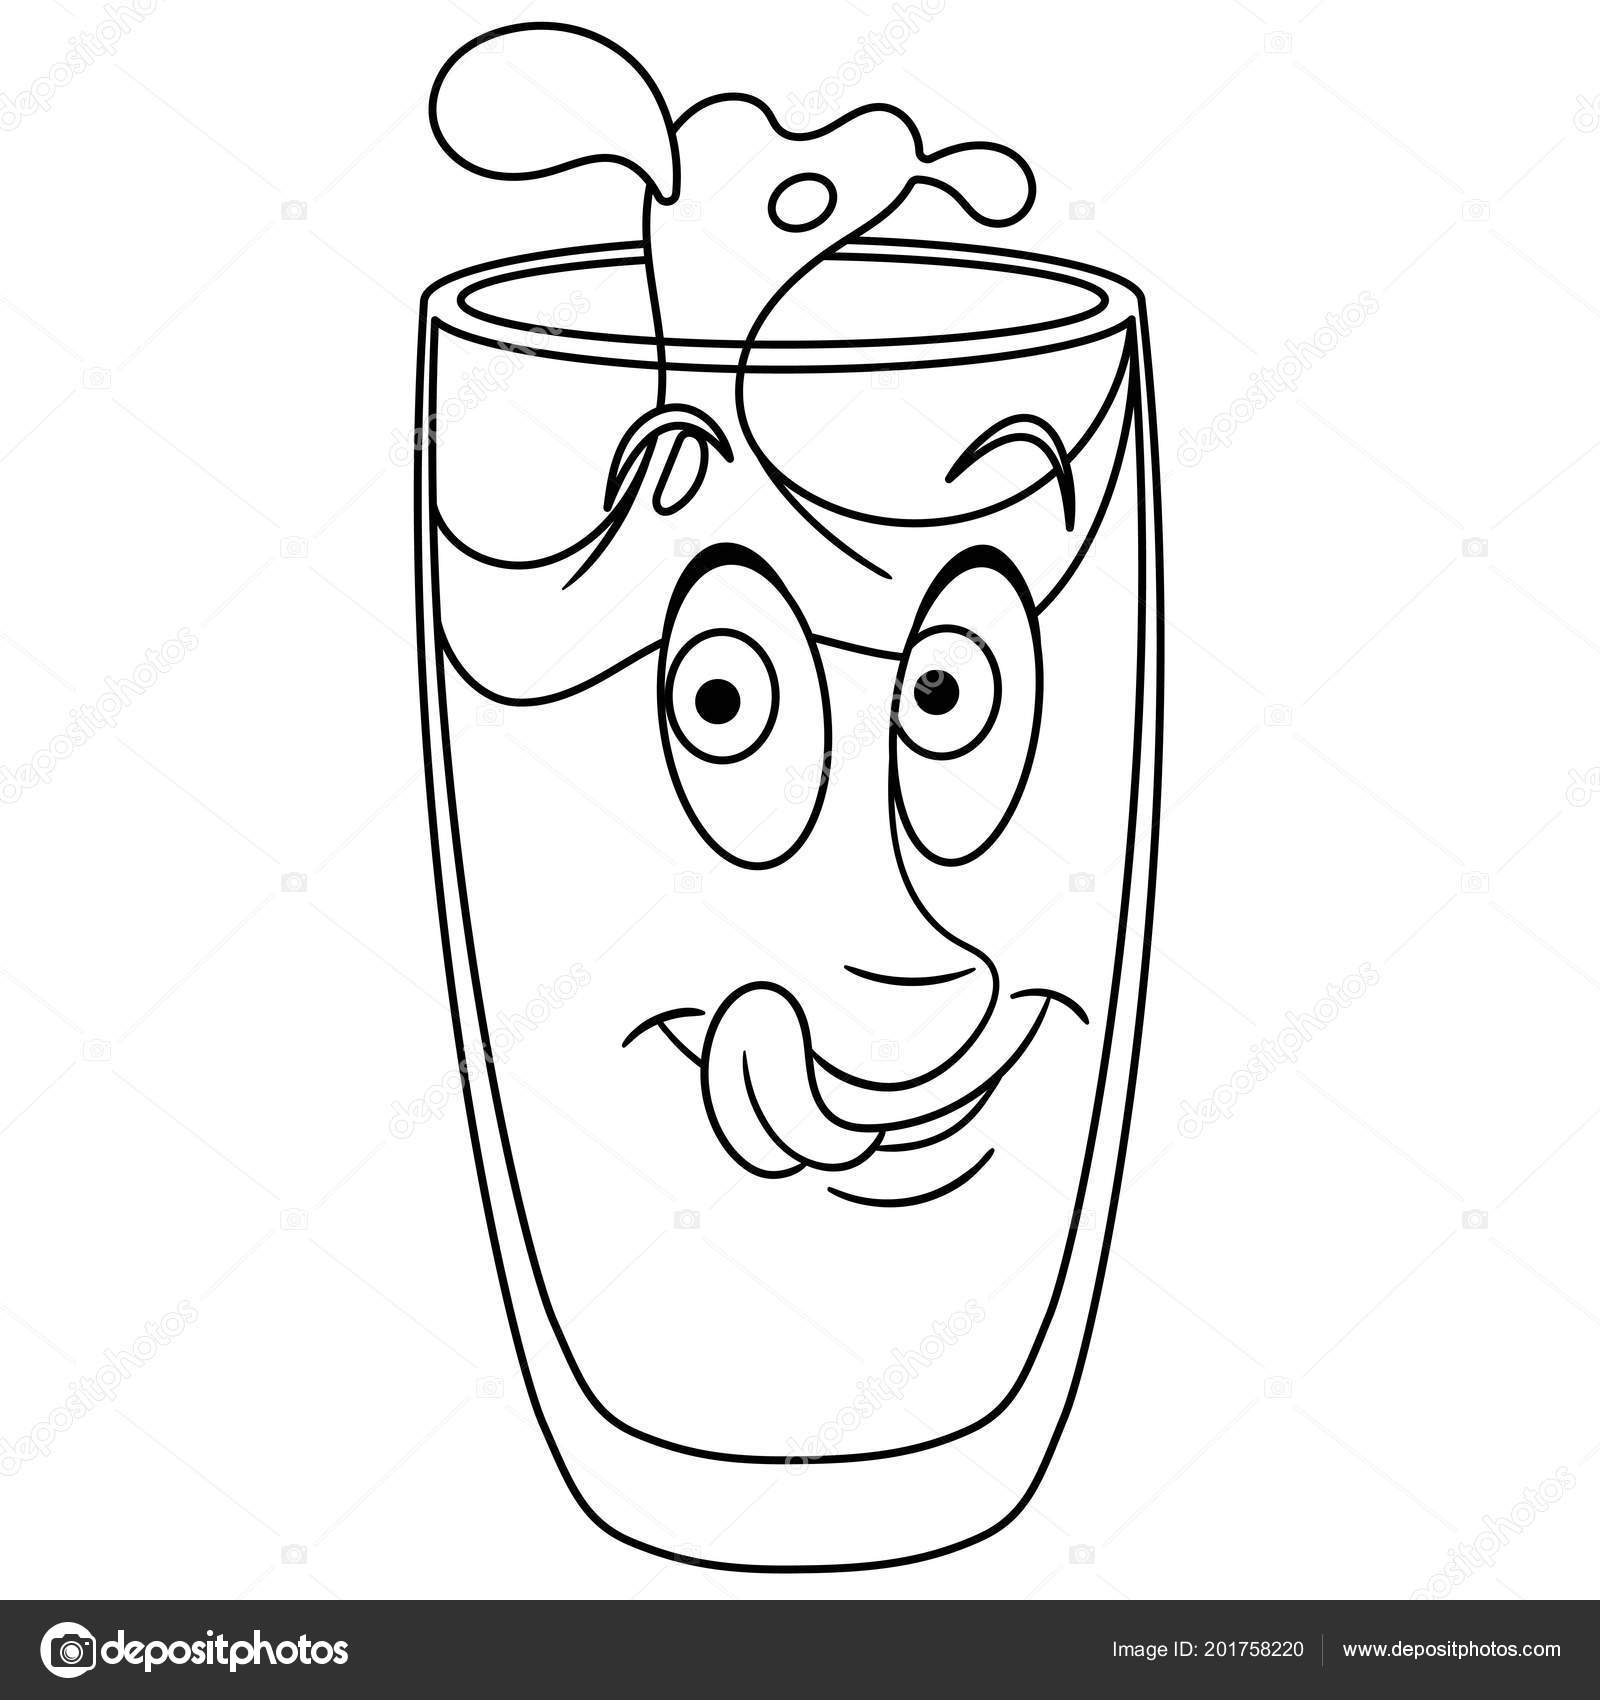 Coloring Page Coloring Book Water Glass Drink Happy Food Concept Vector Image By C Sybirko Vector Stock 201758220